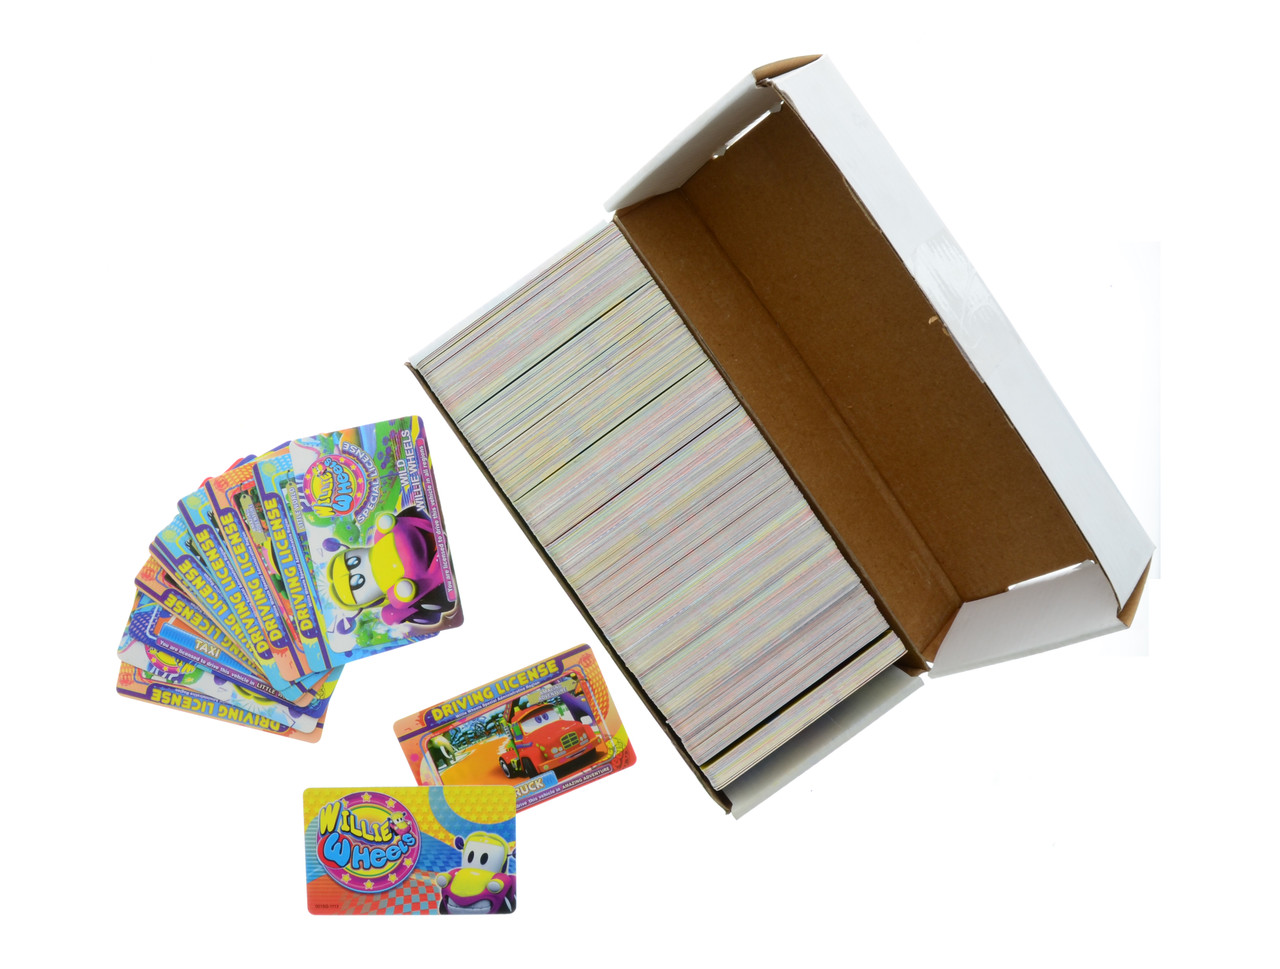 Willie Wheels Collector Cards - Box of 500 (WW CARD)